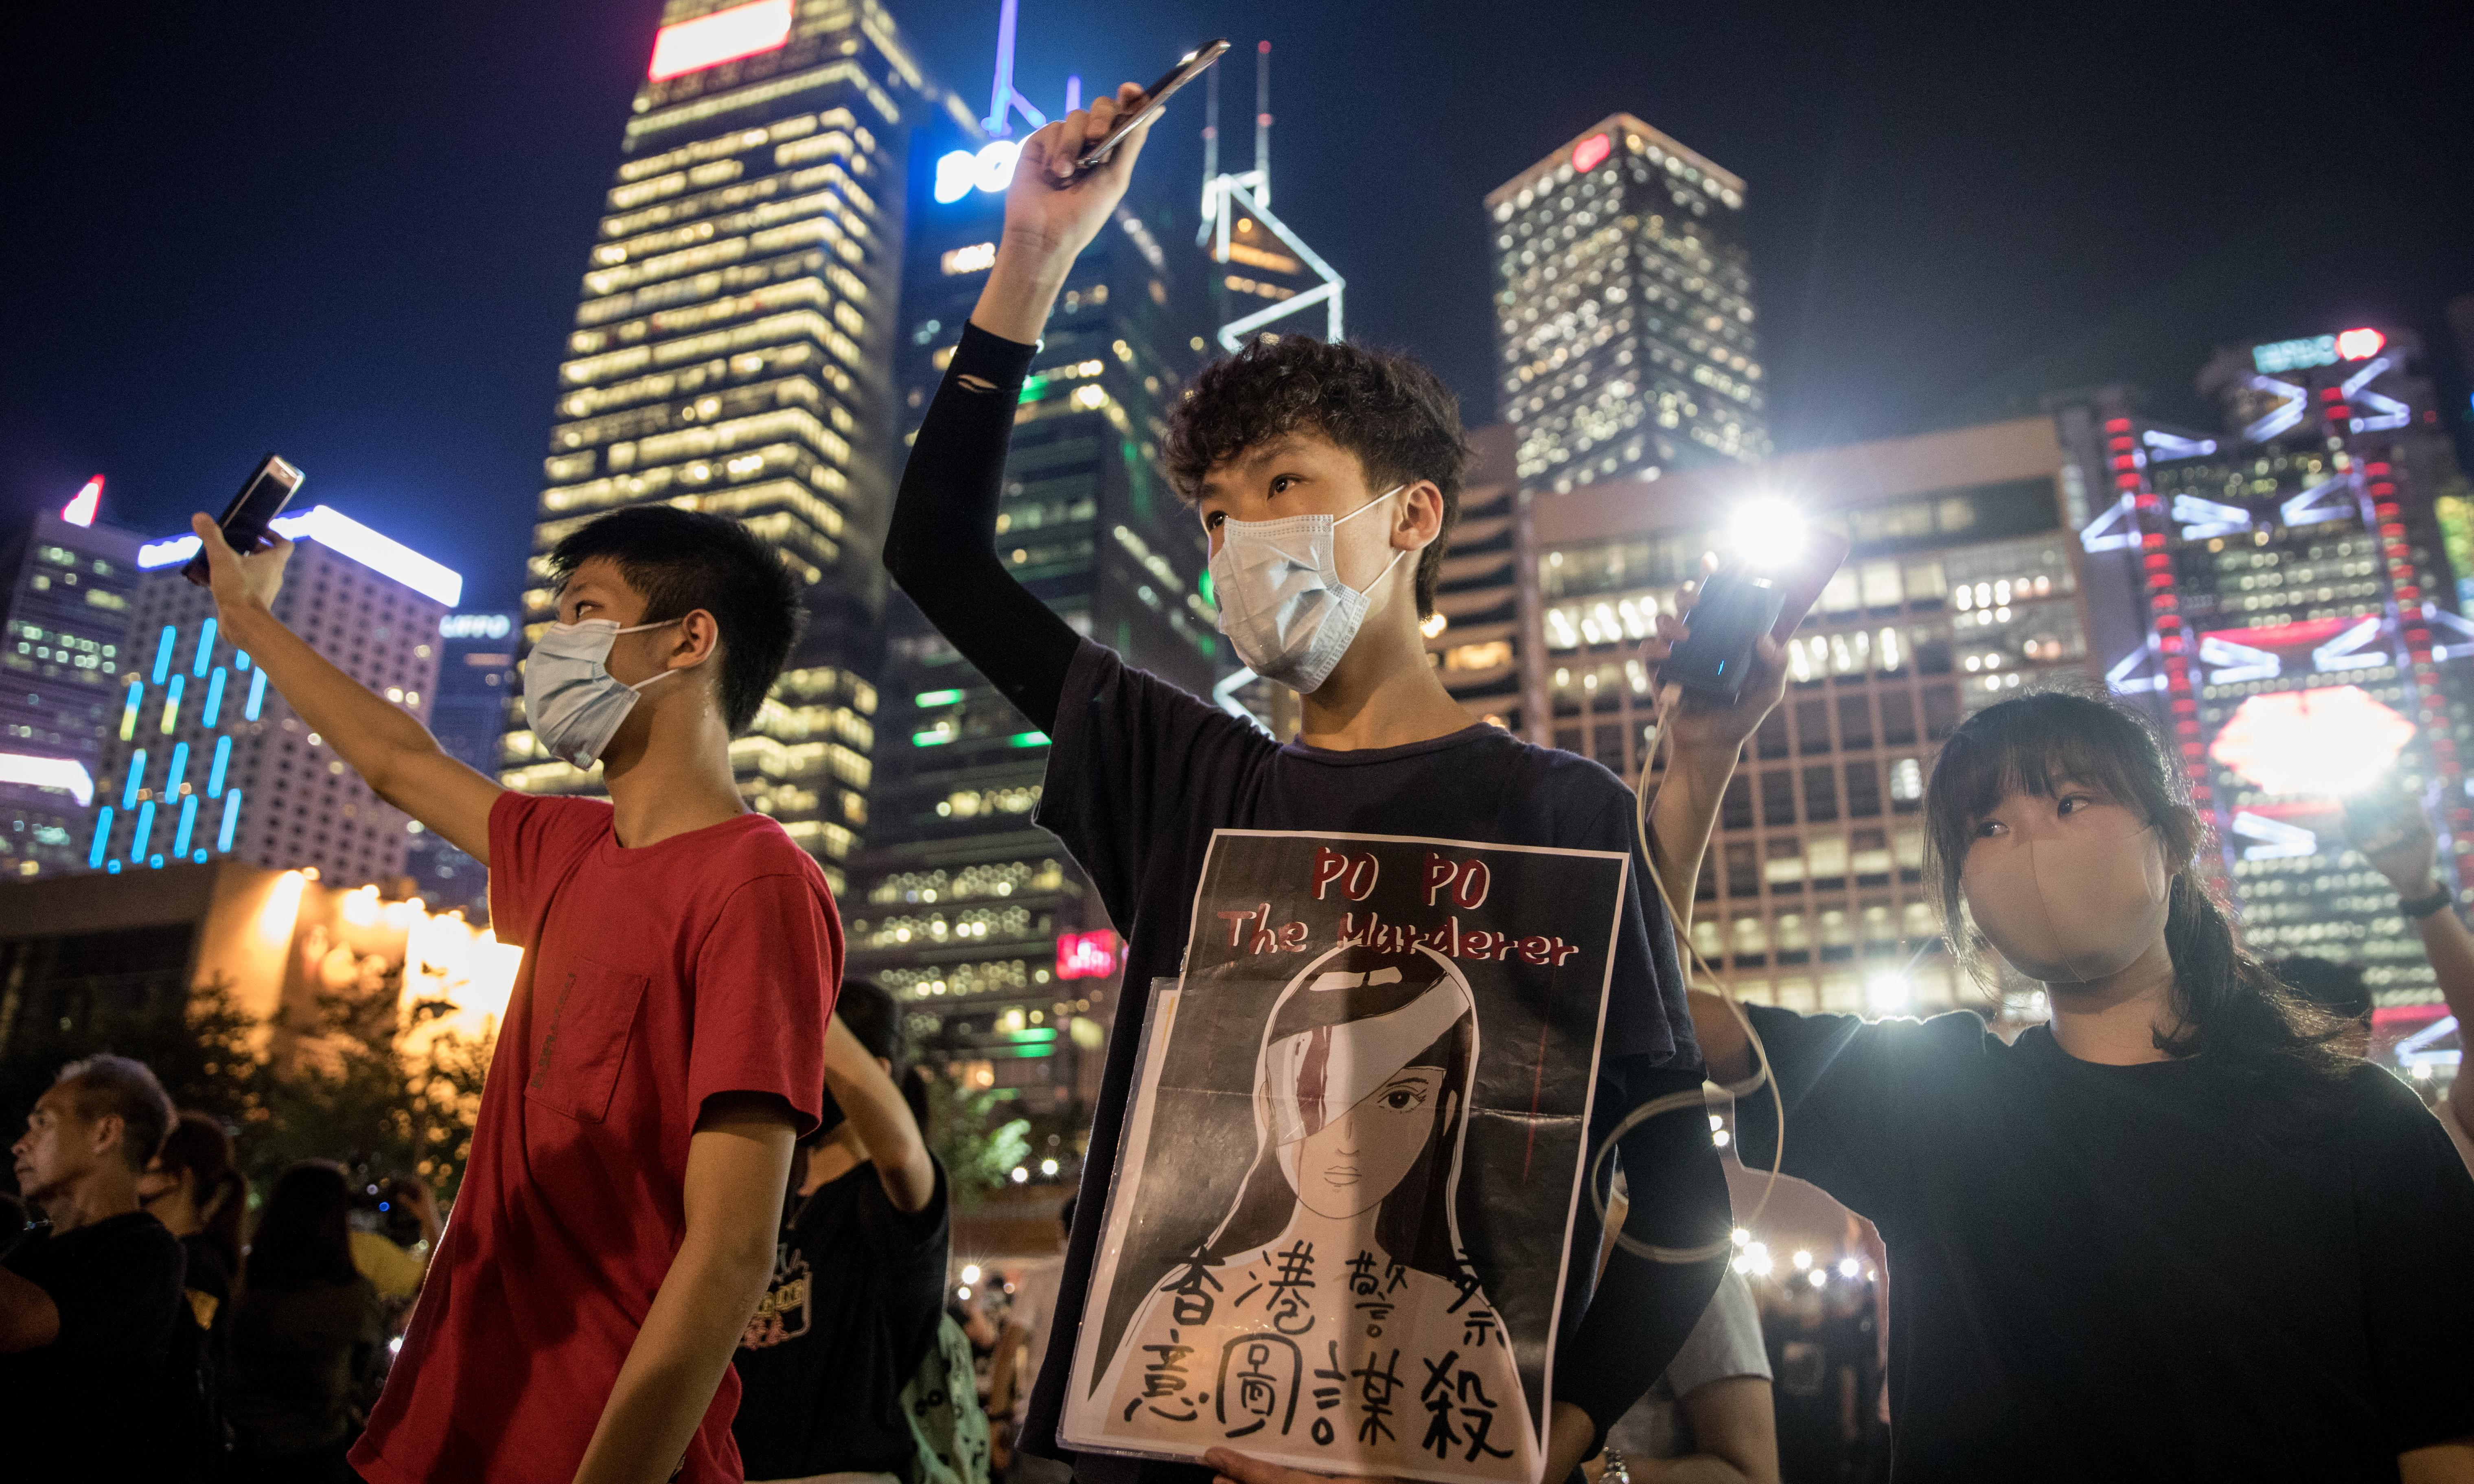 Hong Kong protests: YouTube takes down 200 channels spreading disinformation